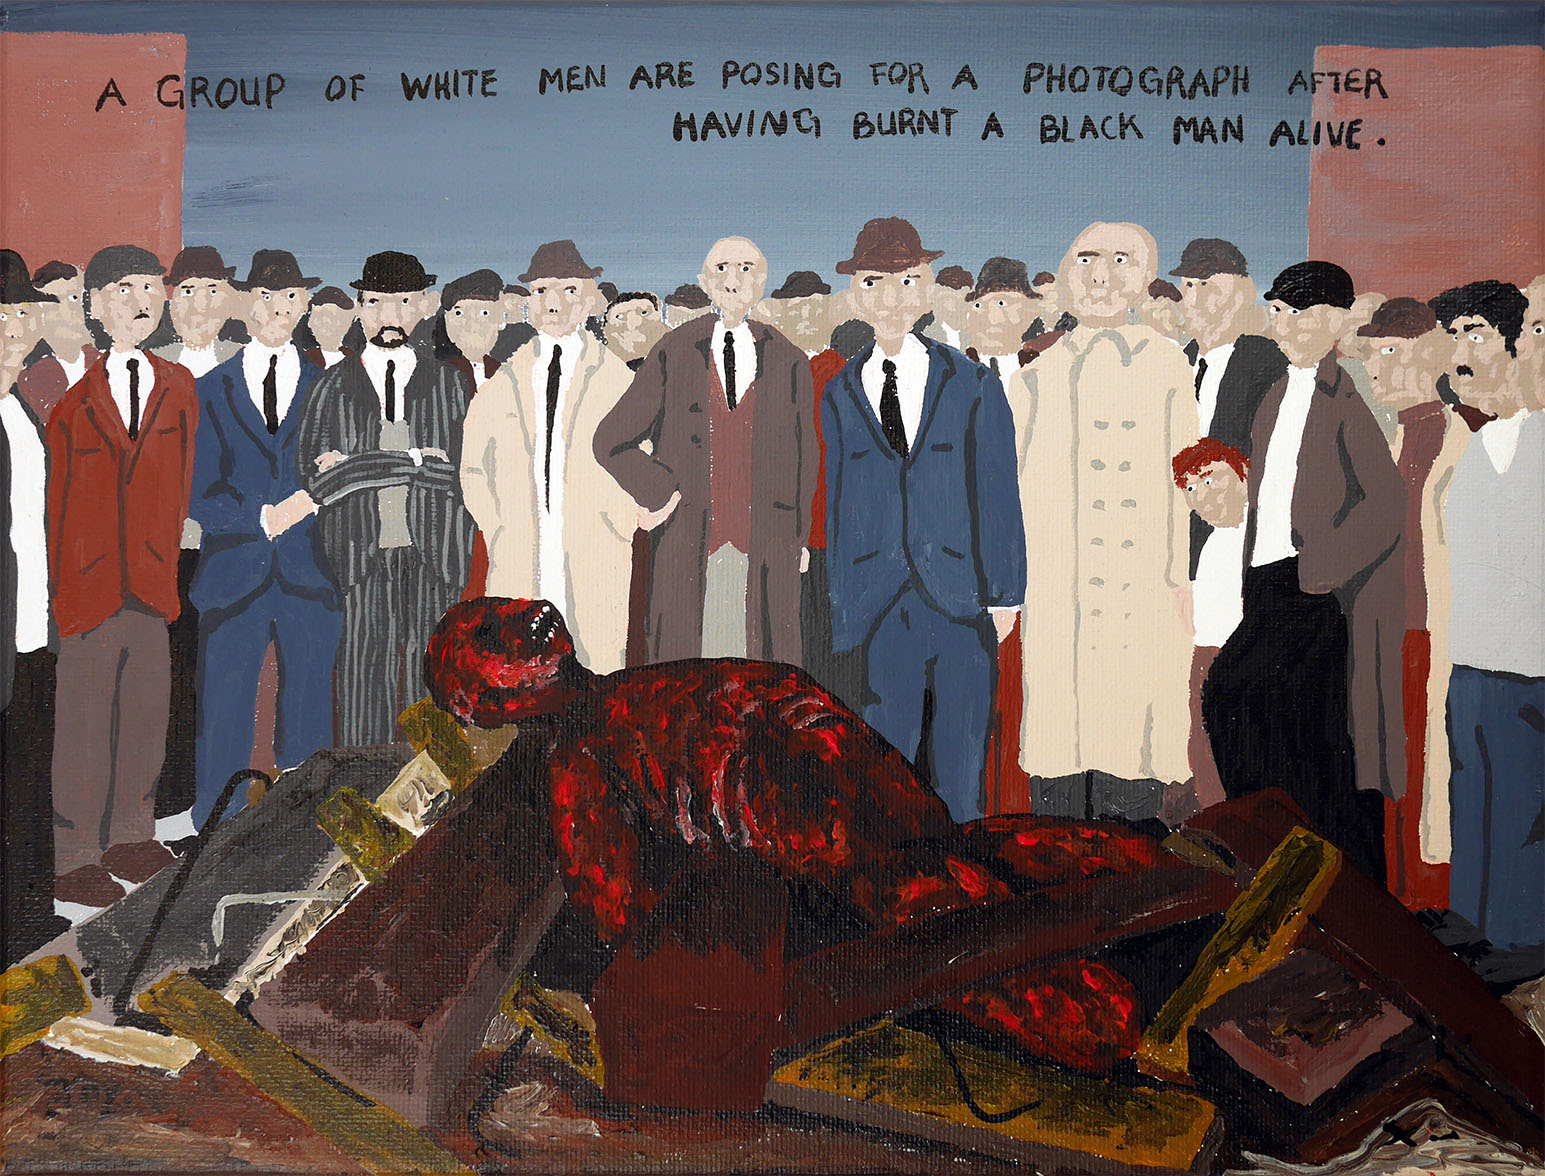 Bad Painting number 103: A group of white men are posing for a photograph after having burnt a black man alive.